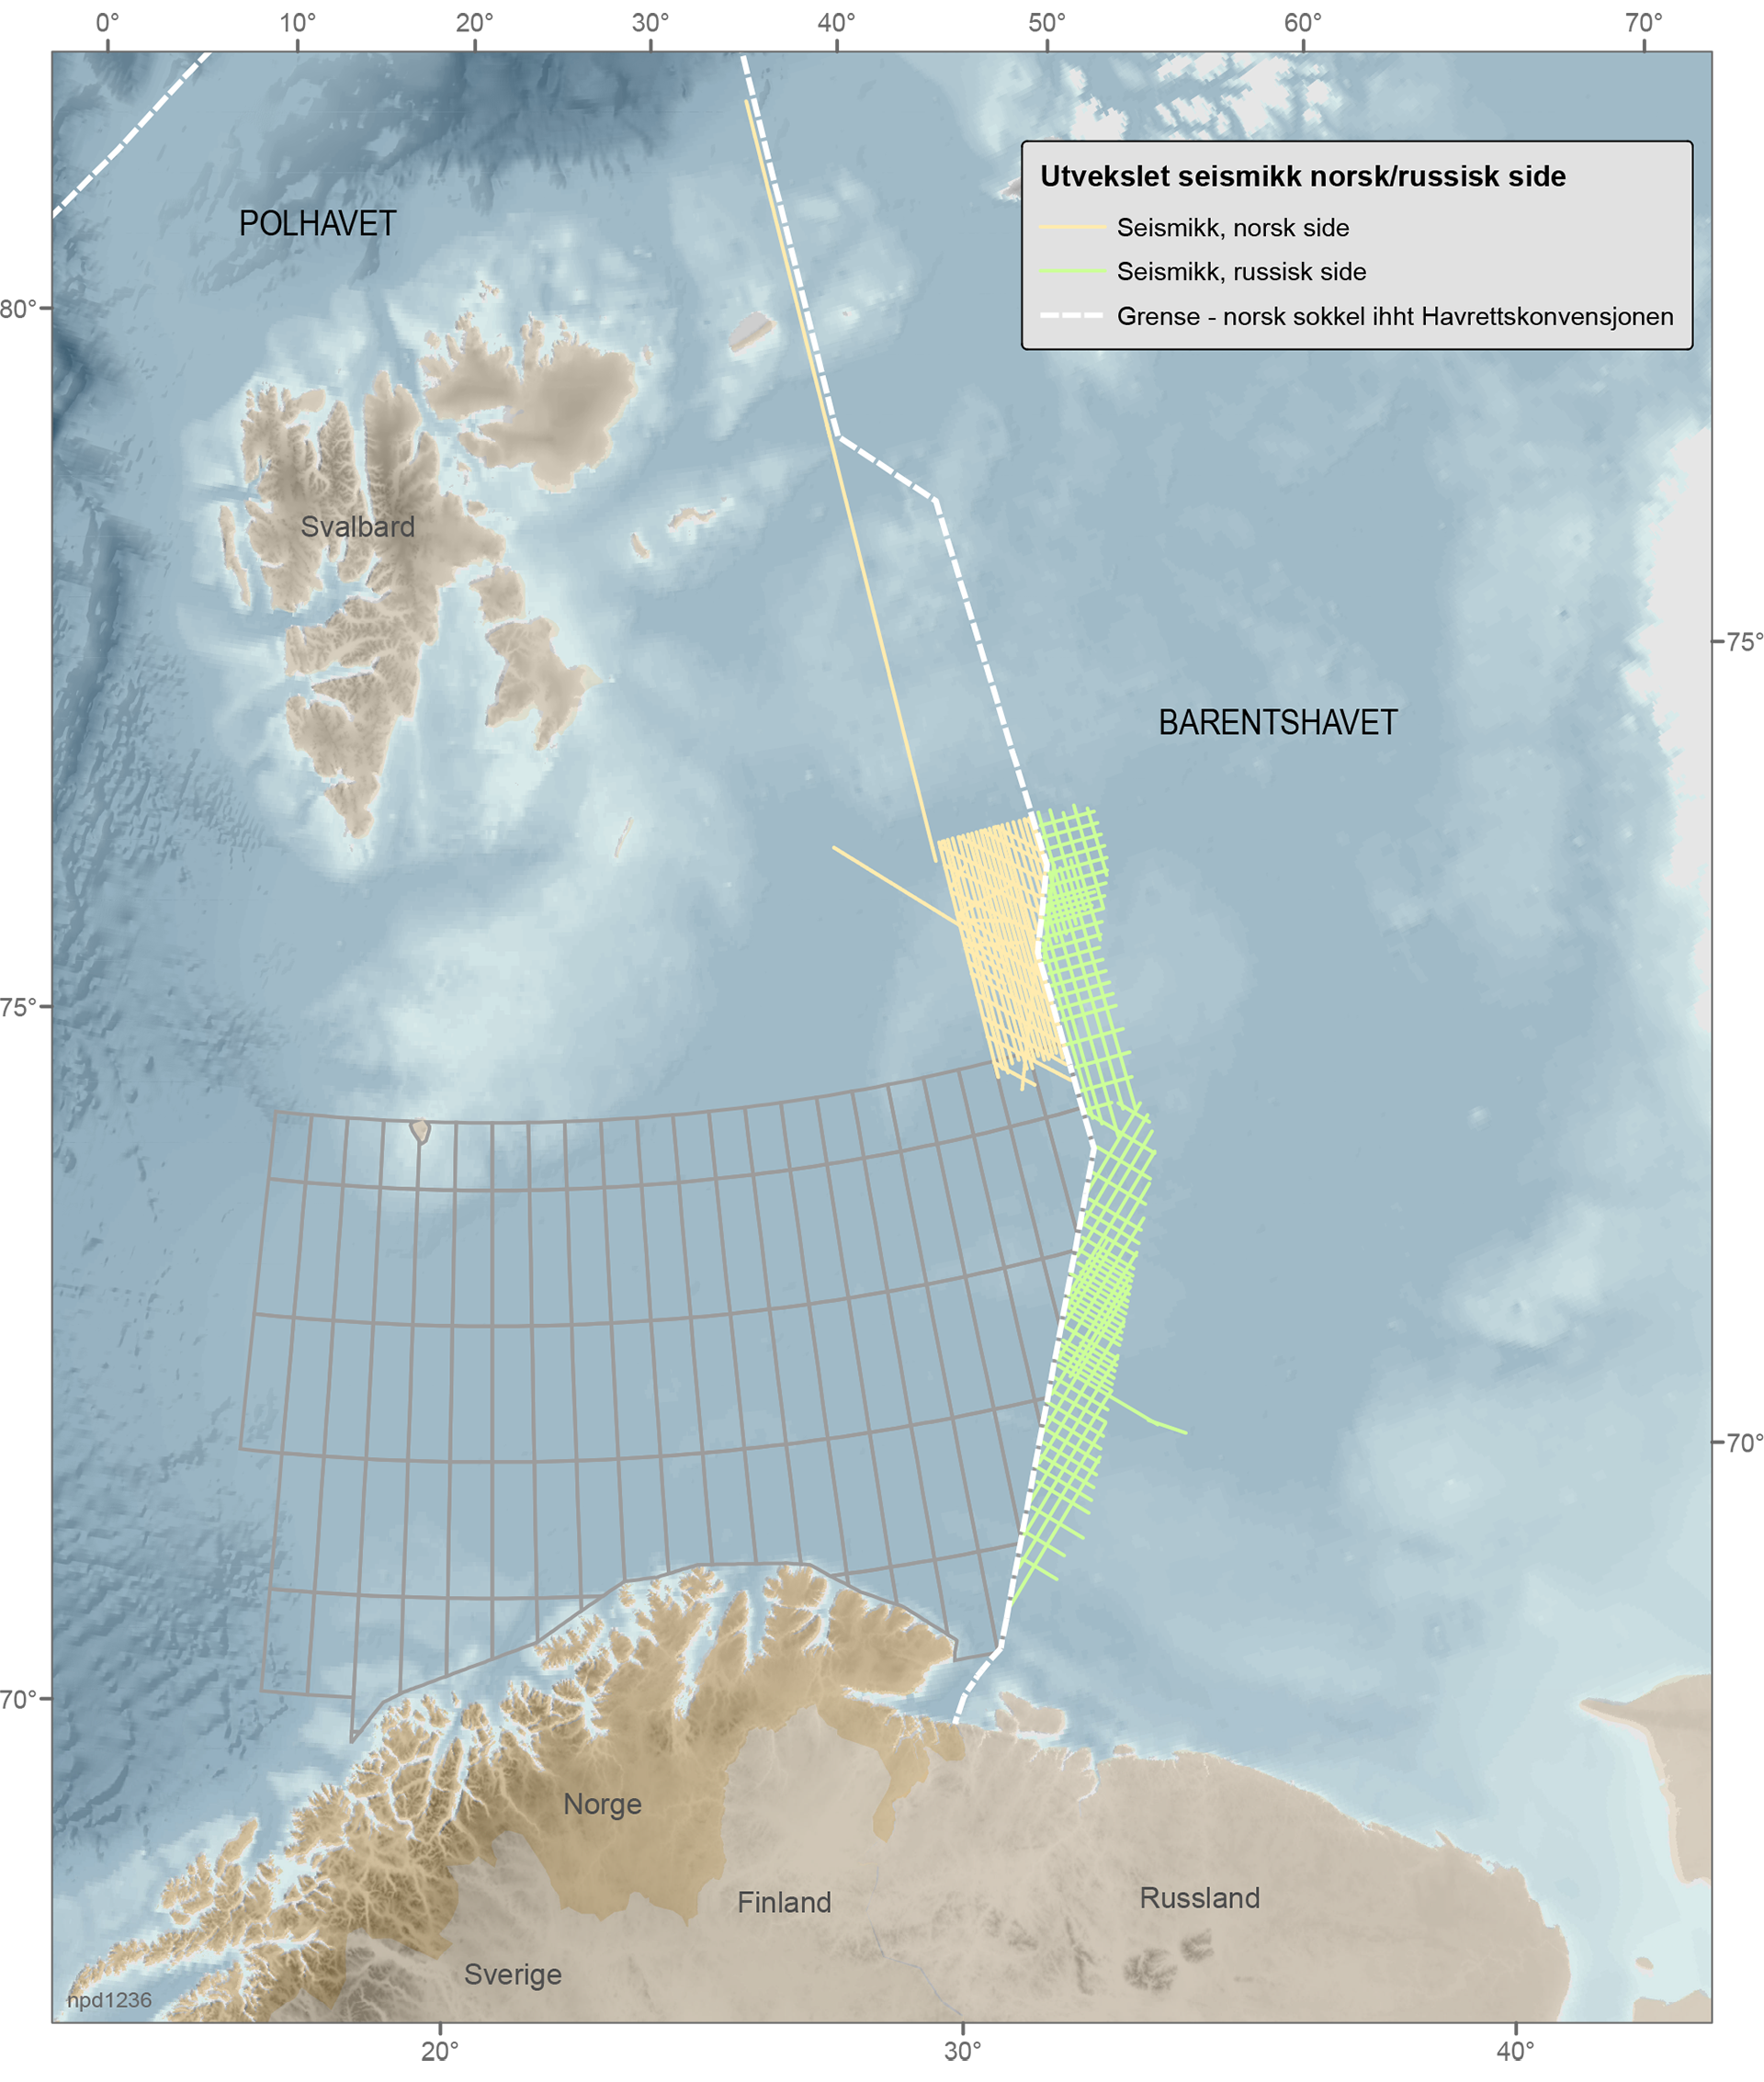 Norway has gathered considerable amounts of seismic data in the Barents Sea. The Norwegian Petroleum Directorate has now reached an agreement with the Russian petroleum authority Rosnedra to exchange information that is gathered on both sides of the delimitation line between Norway and Russia. (Map courtesy Norwegian Petroleum Directorate via High North News)